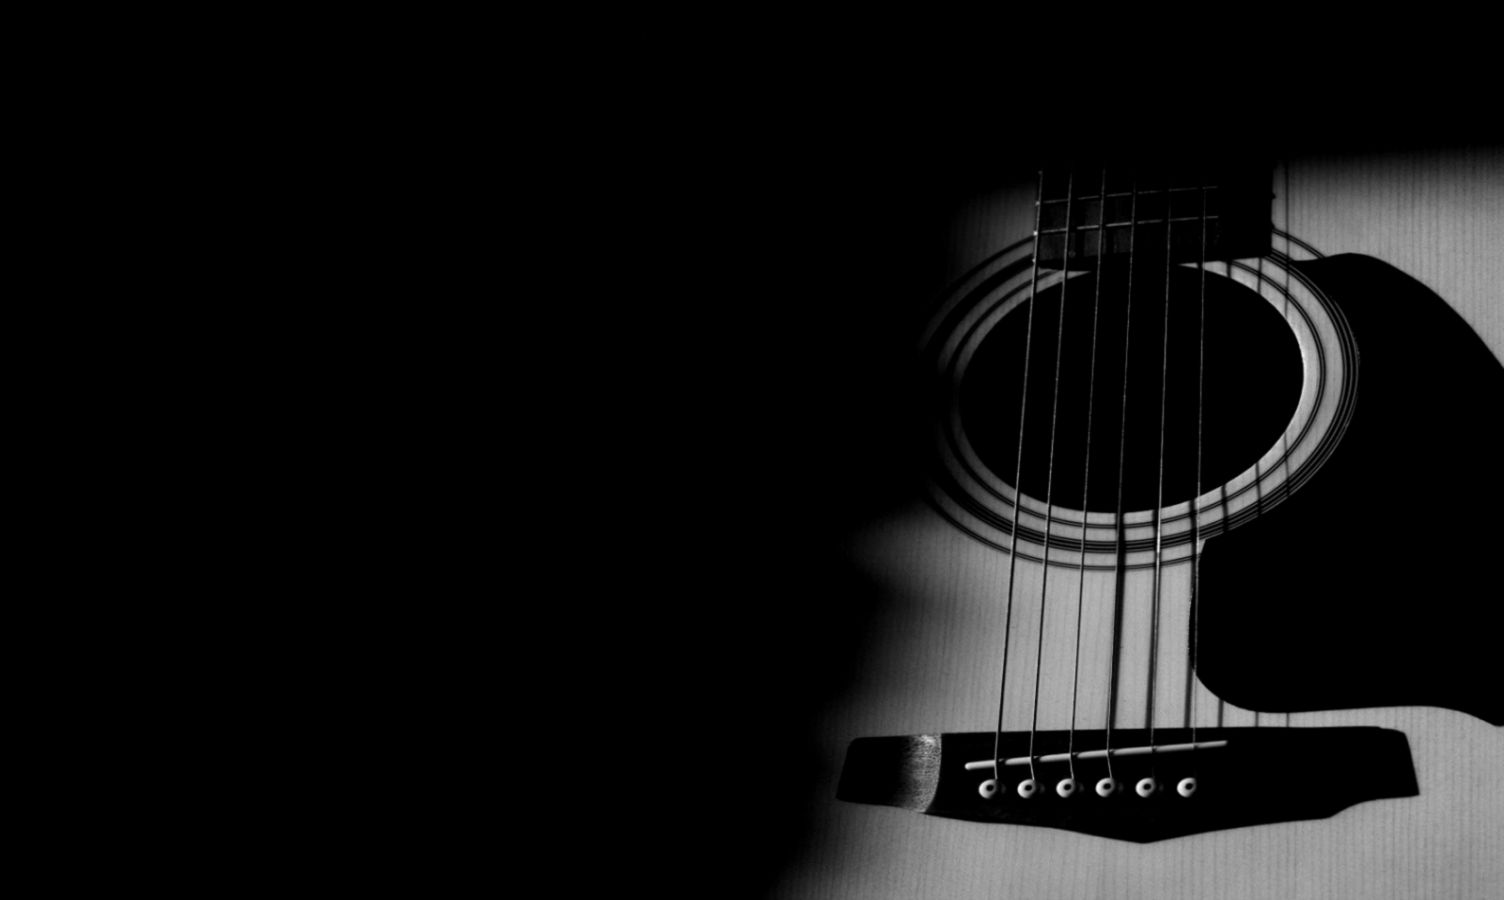 Wallpaper Hd 1080p Black And White Guitar Wallpapers Link